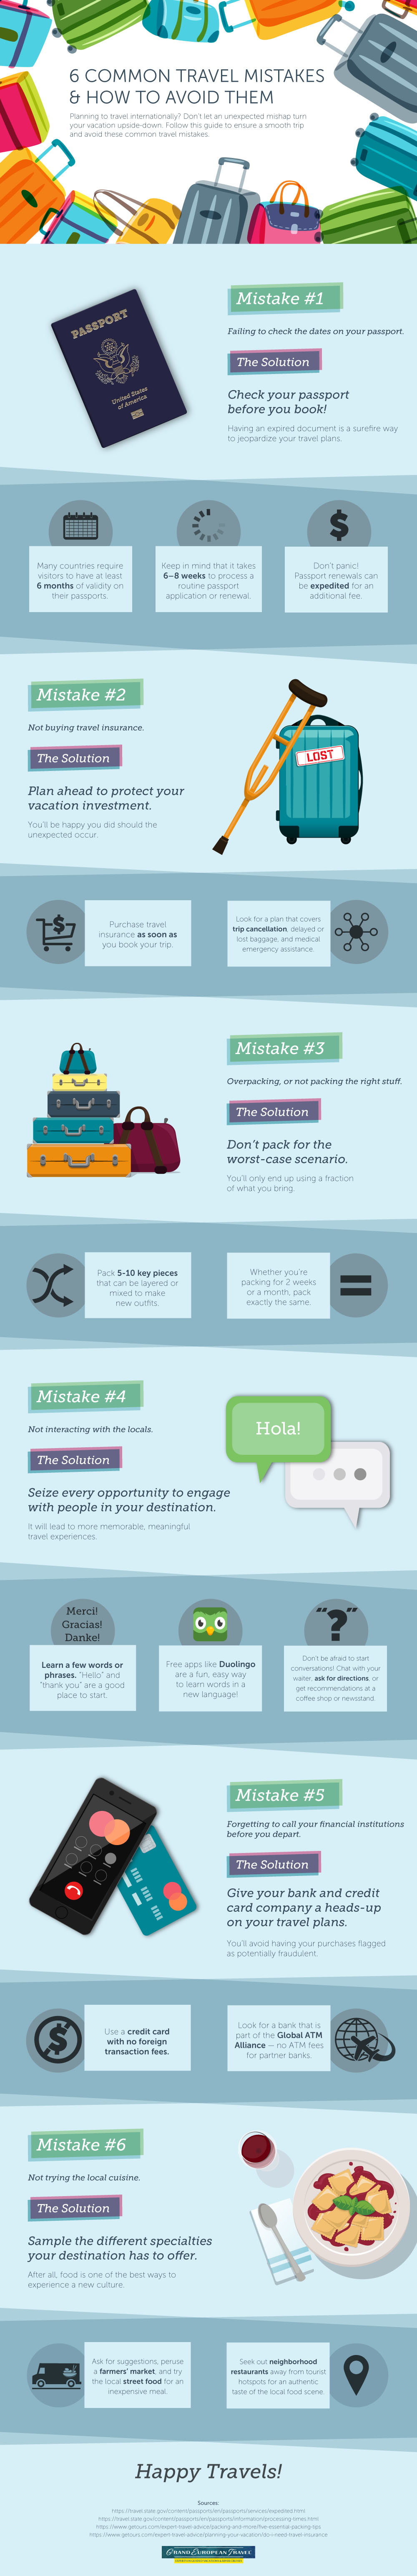 6 Typical Mistakes that Travelers Make and How to Avoid Them - Infographic